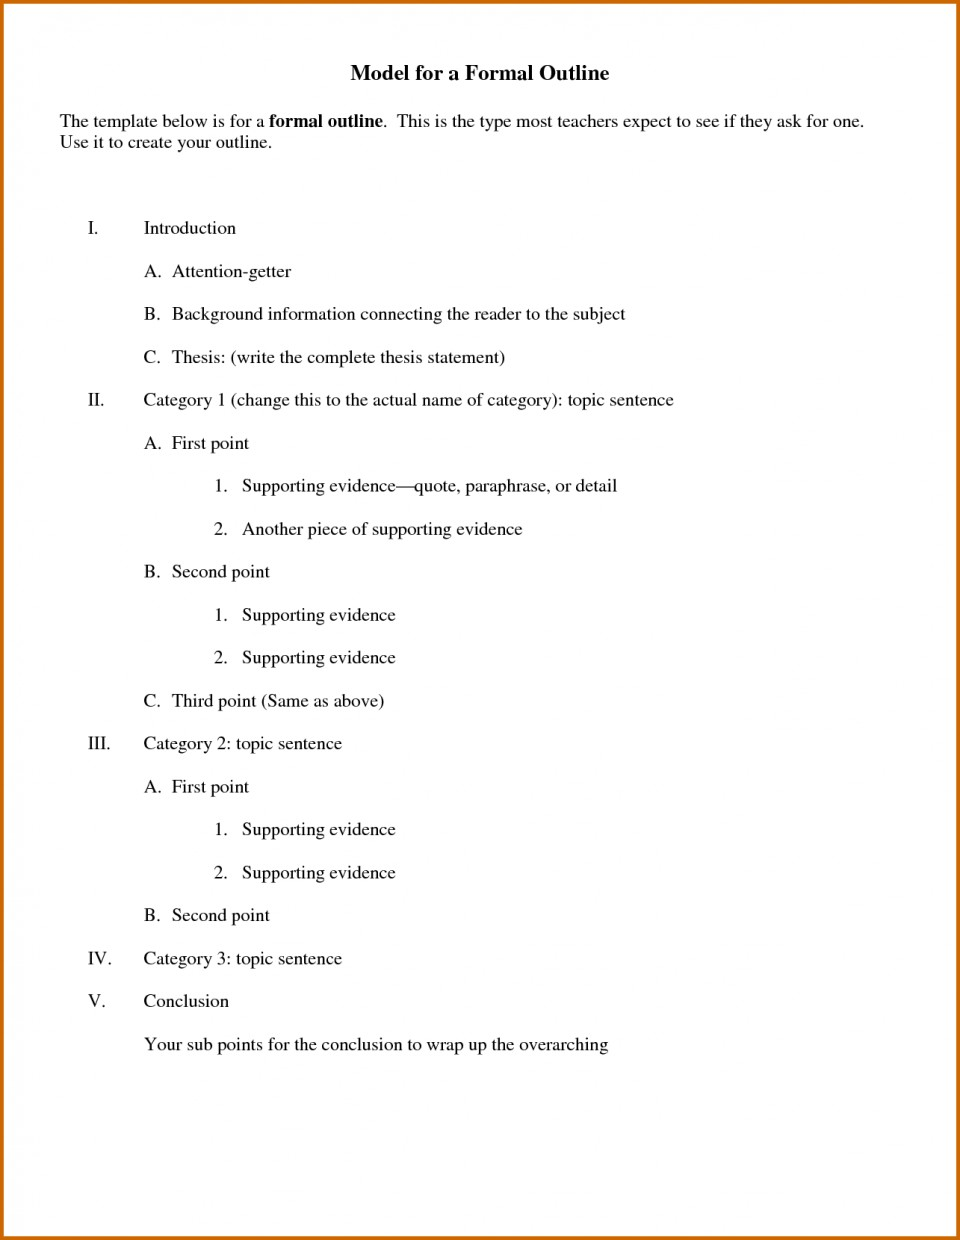 010 Essay Example Outline For Informal Marvelous Worksheet Format Research Paper Introduction 960